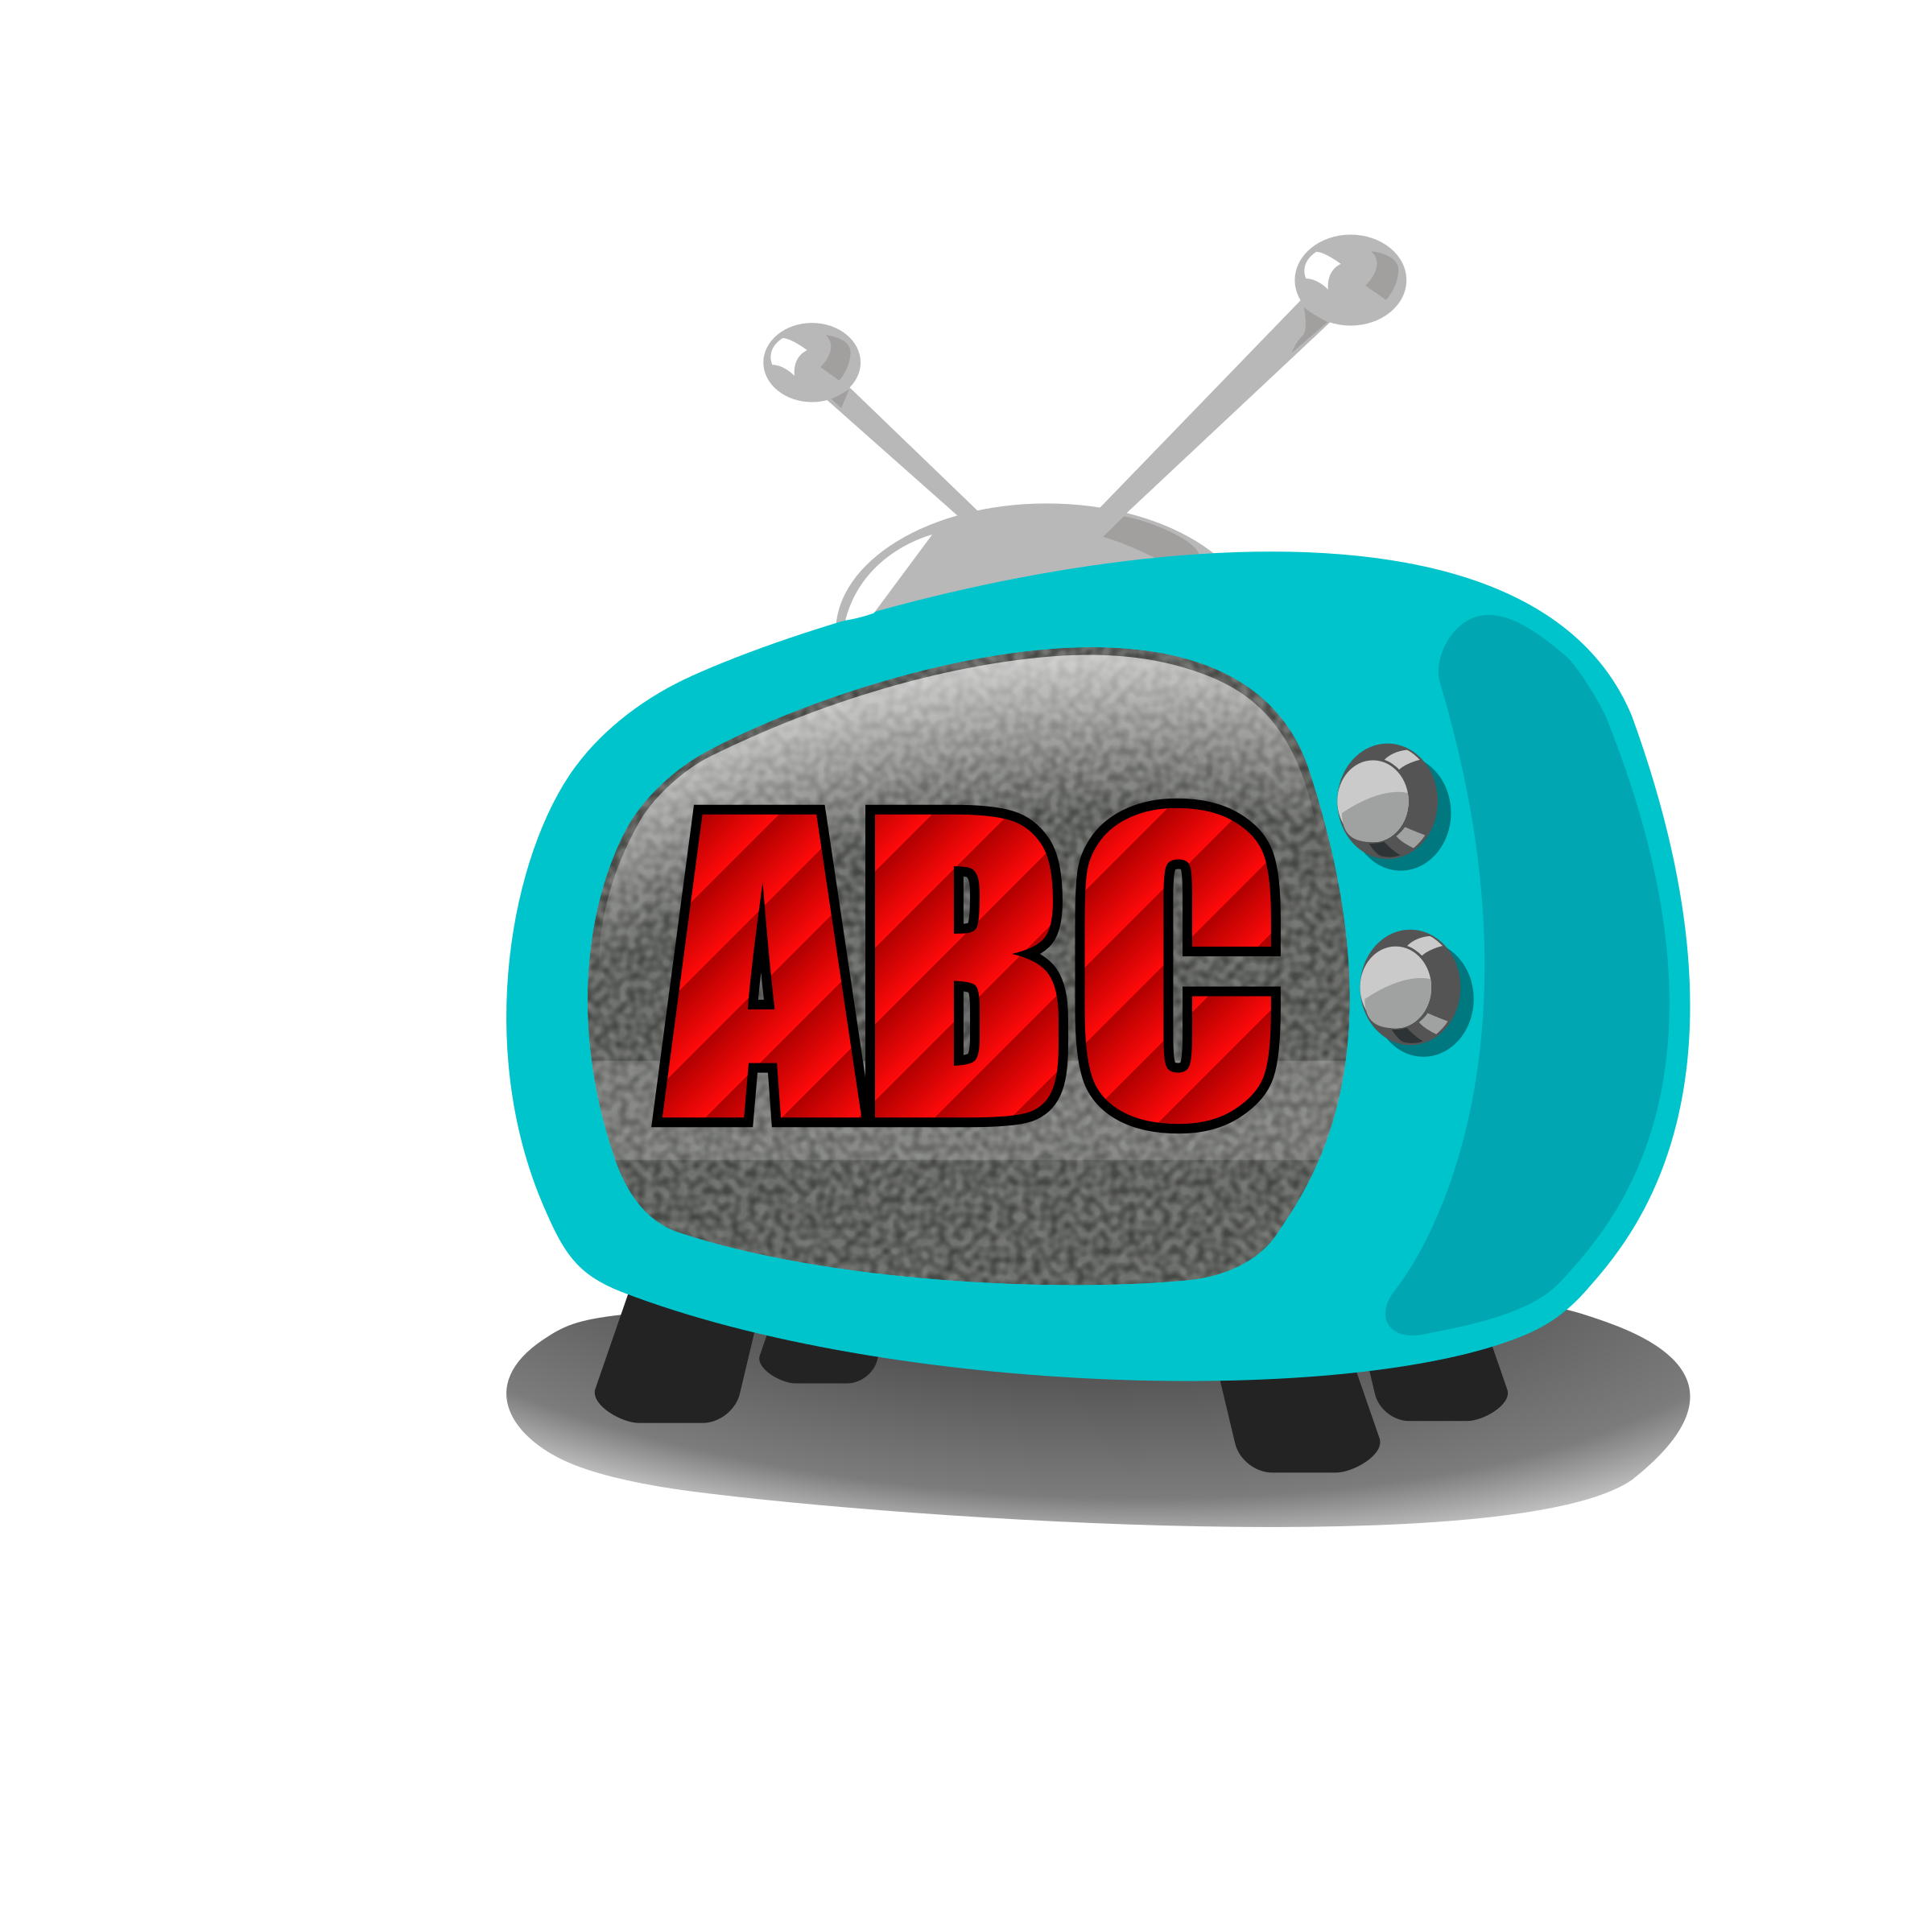 ABC TV (animated) by Lazur URH